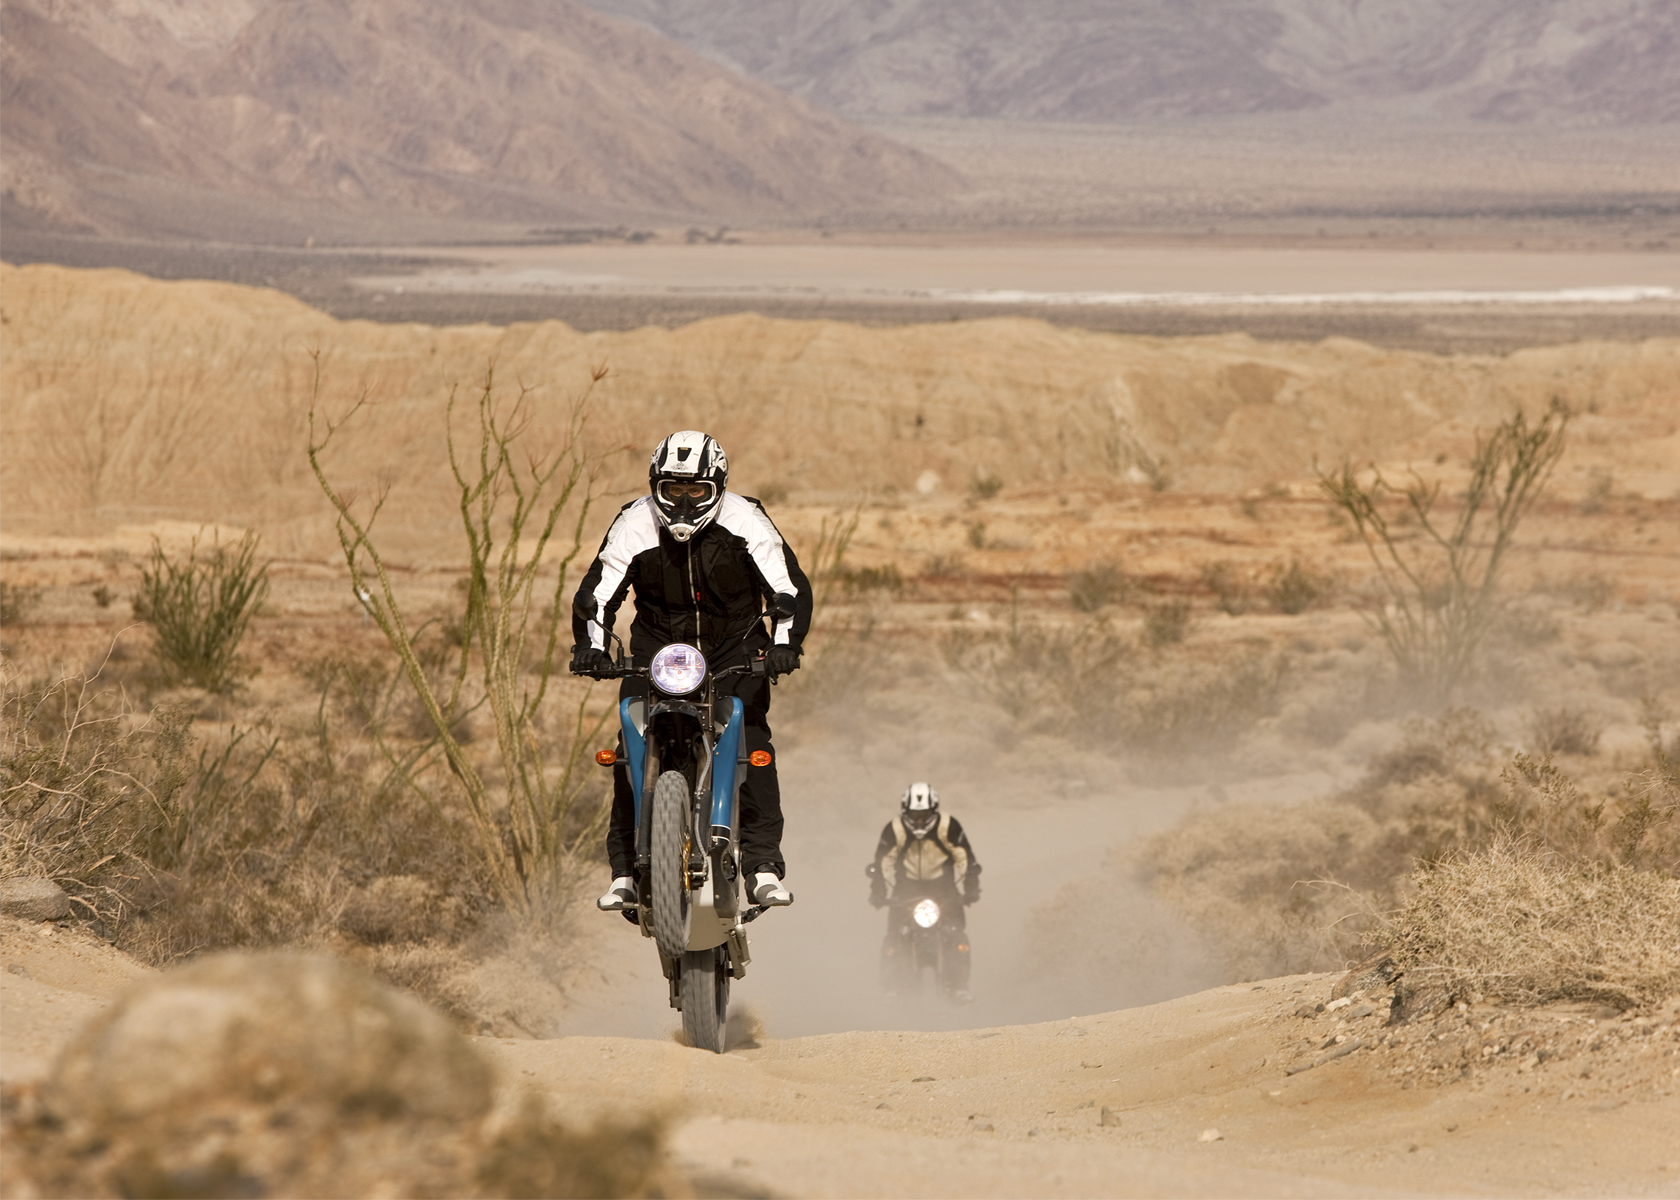 '.2010 Zero DS Electric Motorcycle: Anza Borego - Sandy Trail.'